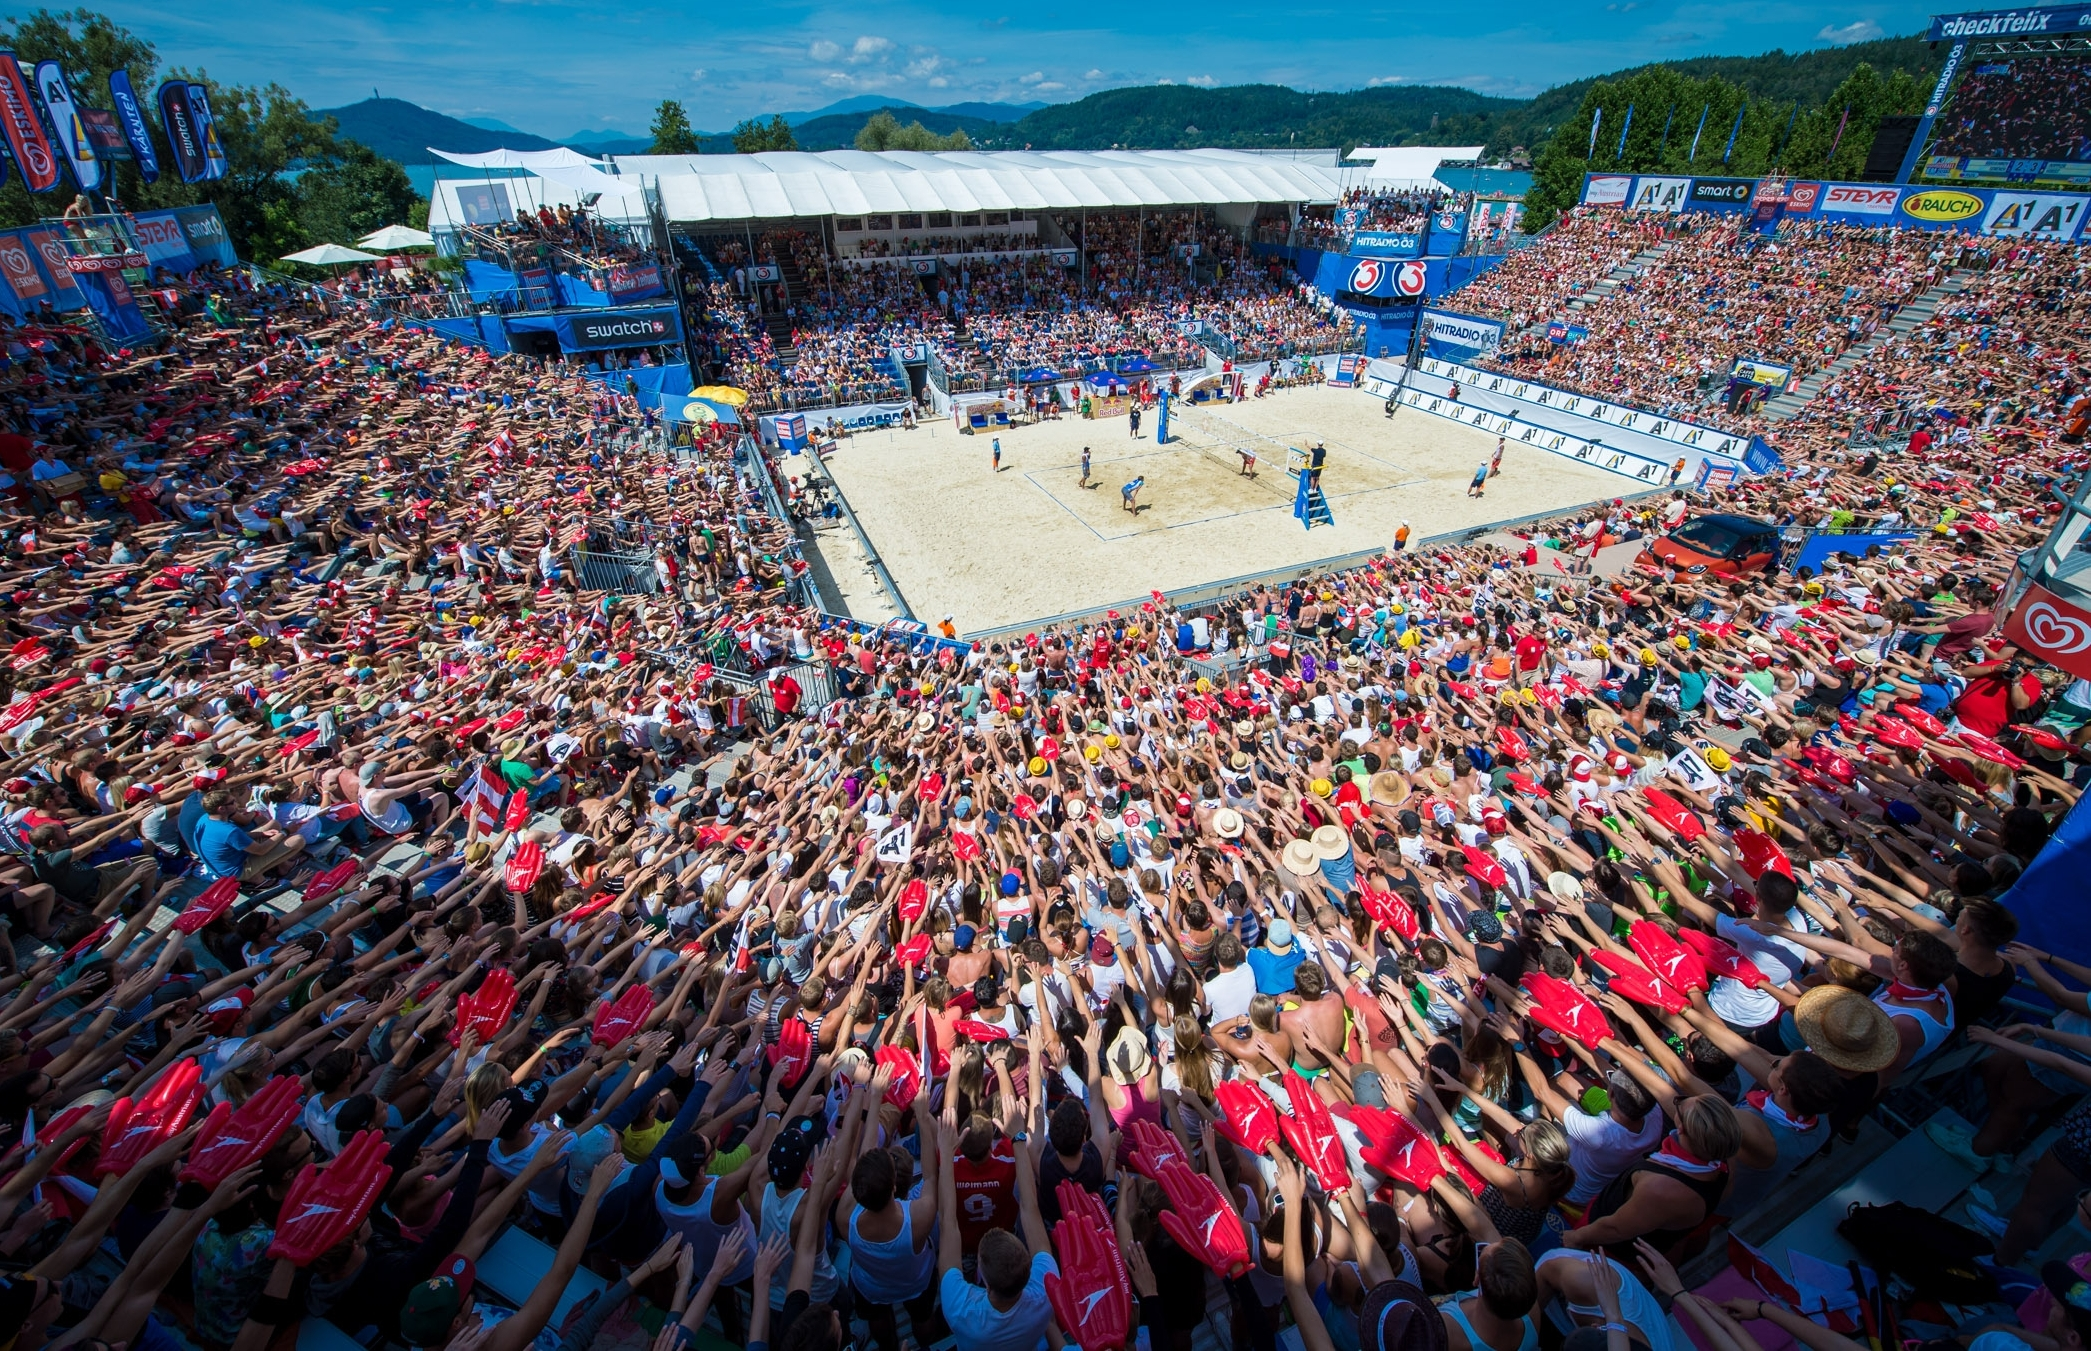 Klagenfurt: a tournament like no other! Photocredit: Bernhard Horst.